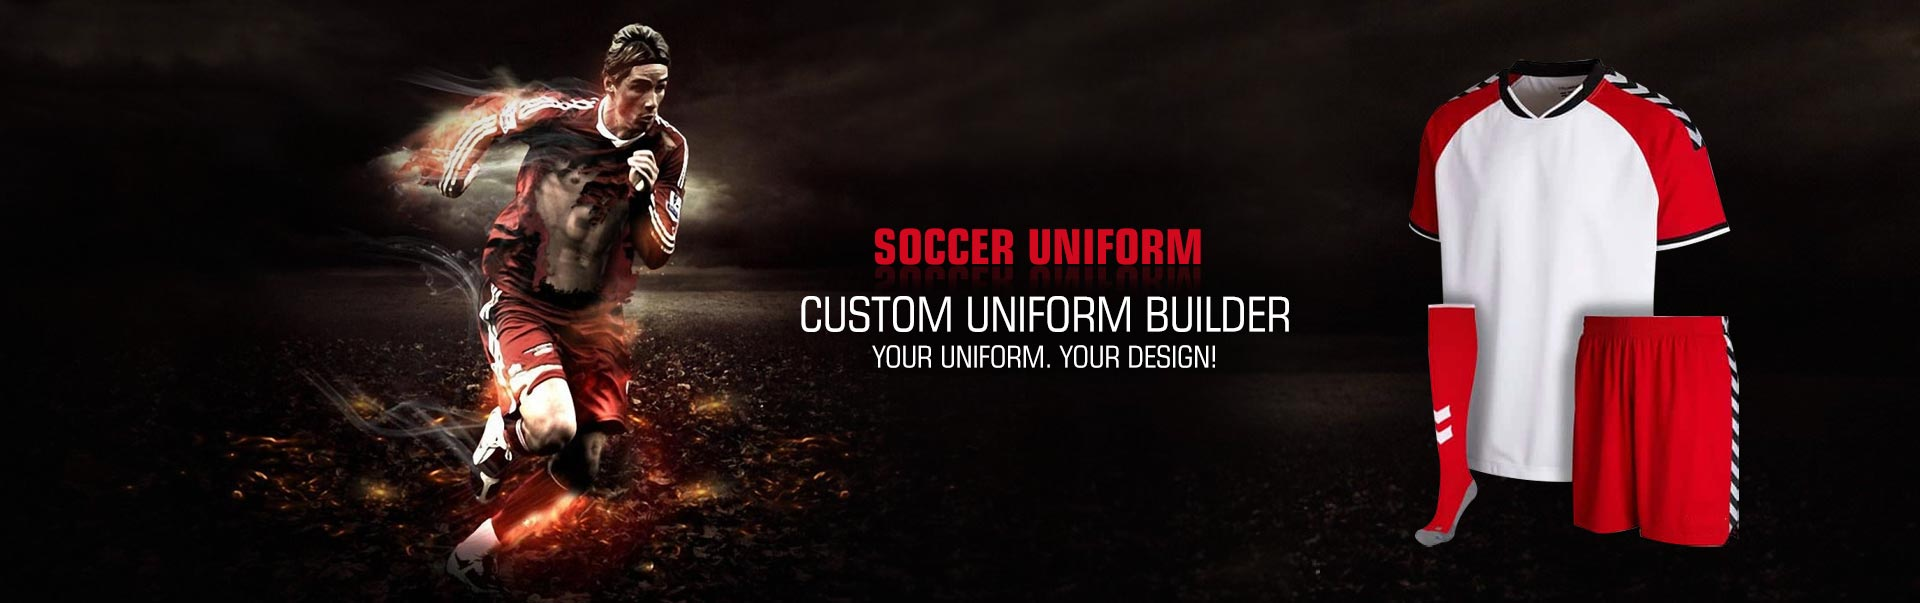 Soccer Uniform Wholesaler, Suppliers in Mckinney